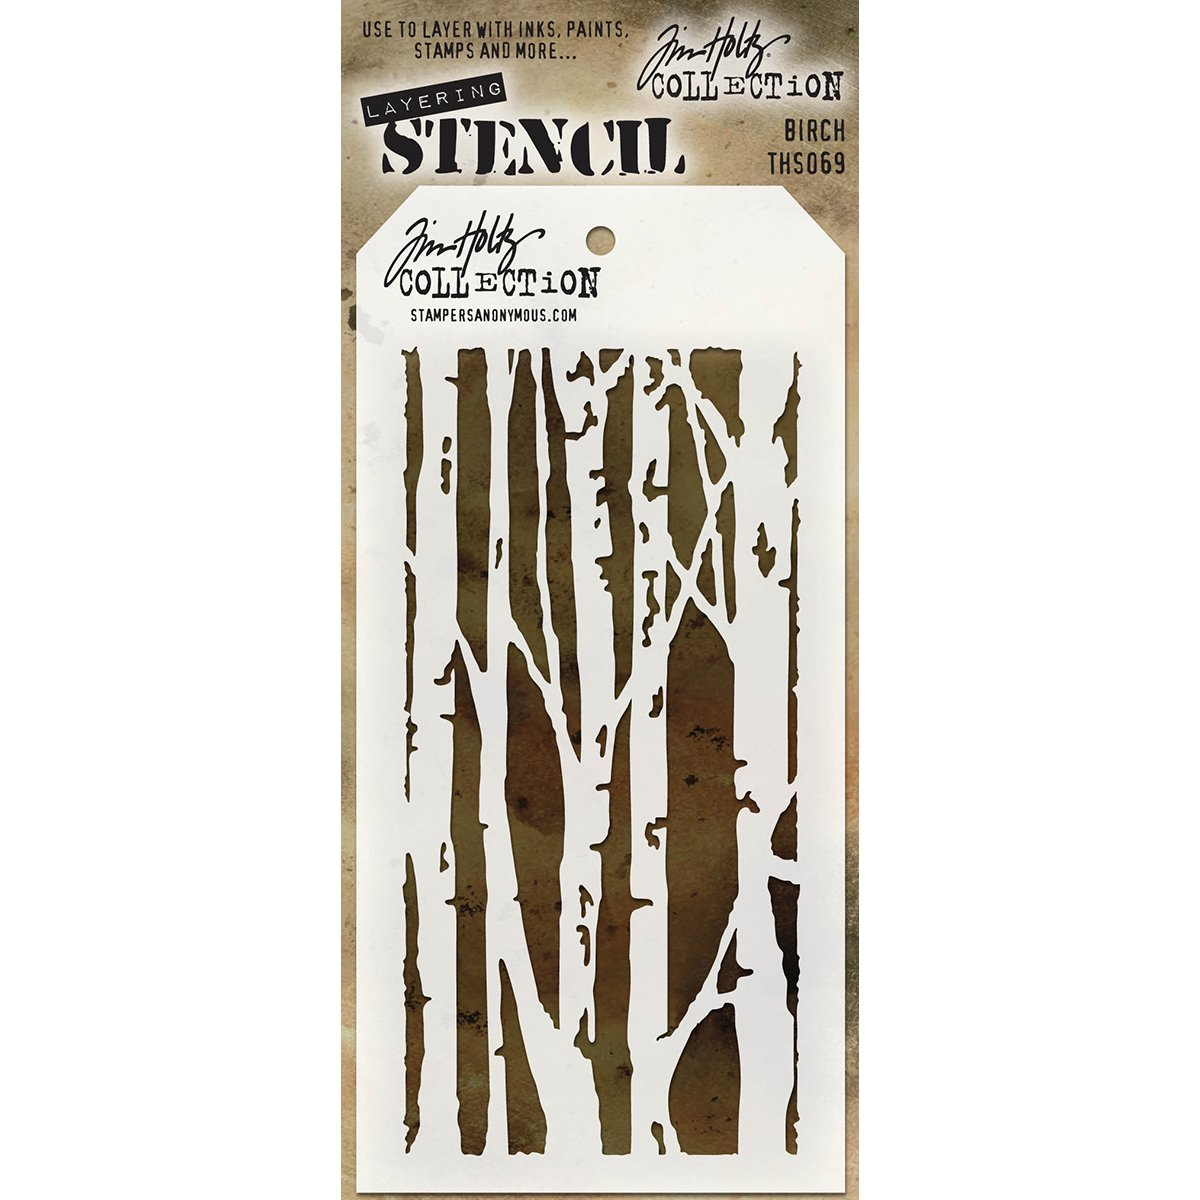 Stampers Anonymous THS069 Tim Holtz Layered stencil,, 4.125 x 21,6 cm Art Gone Wild AGTHS069